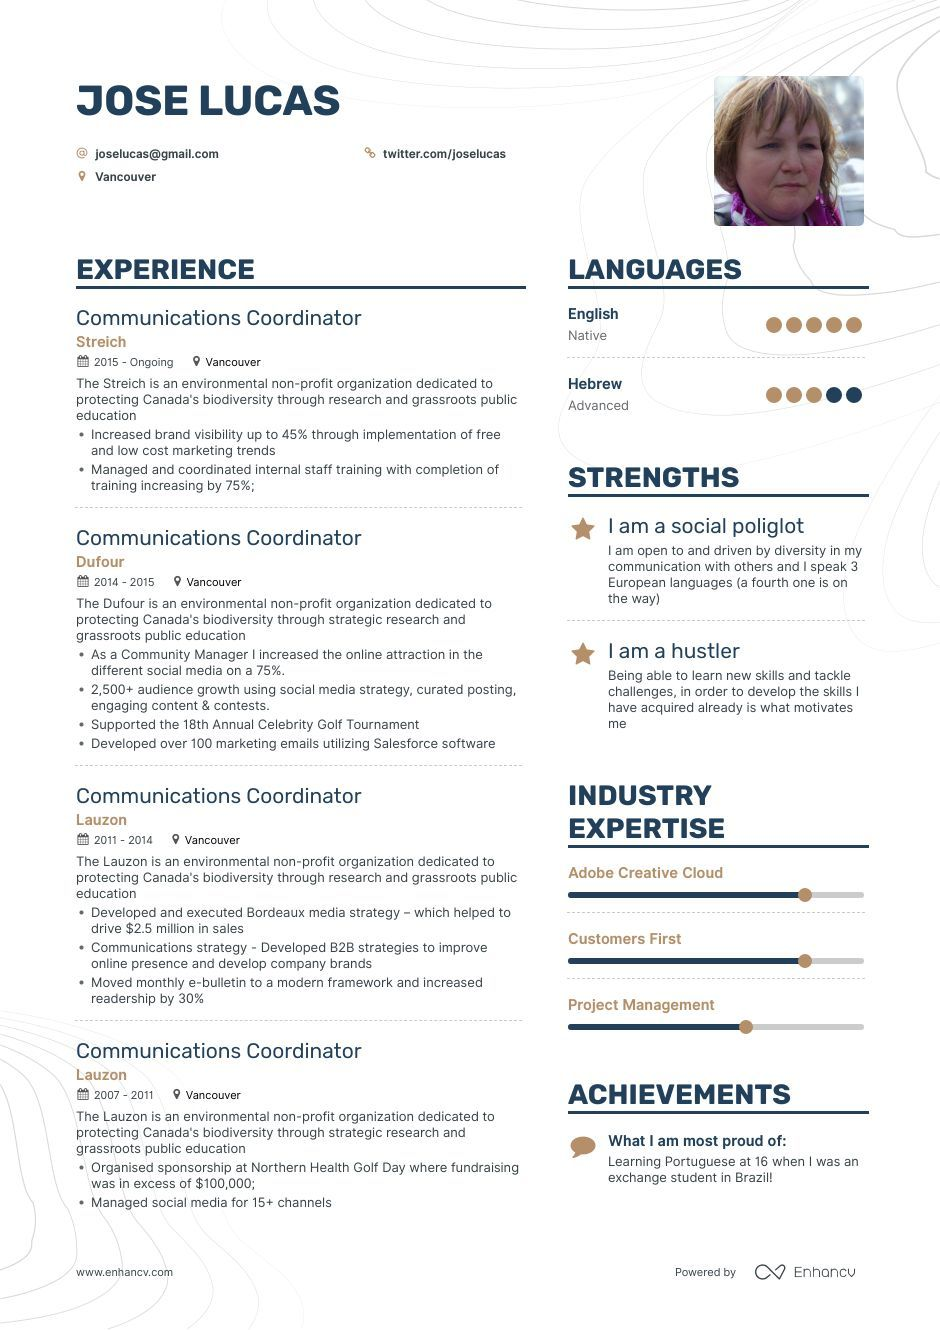 Communications Coordinator Resume Example and guide for